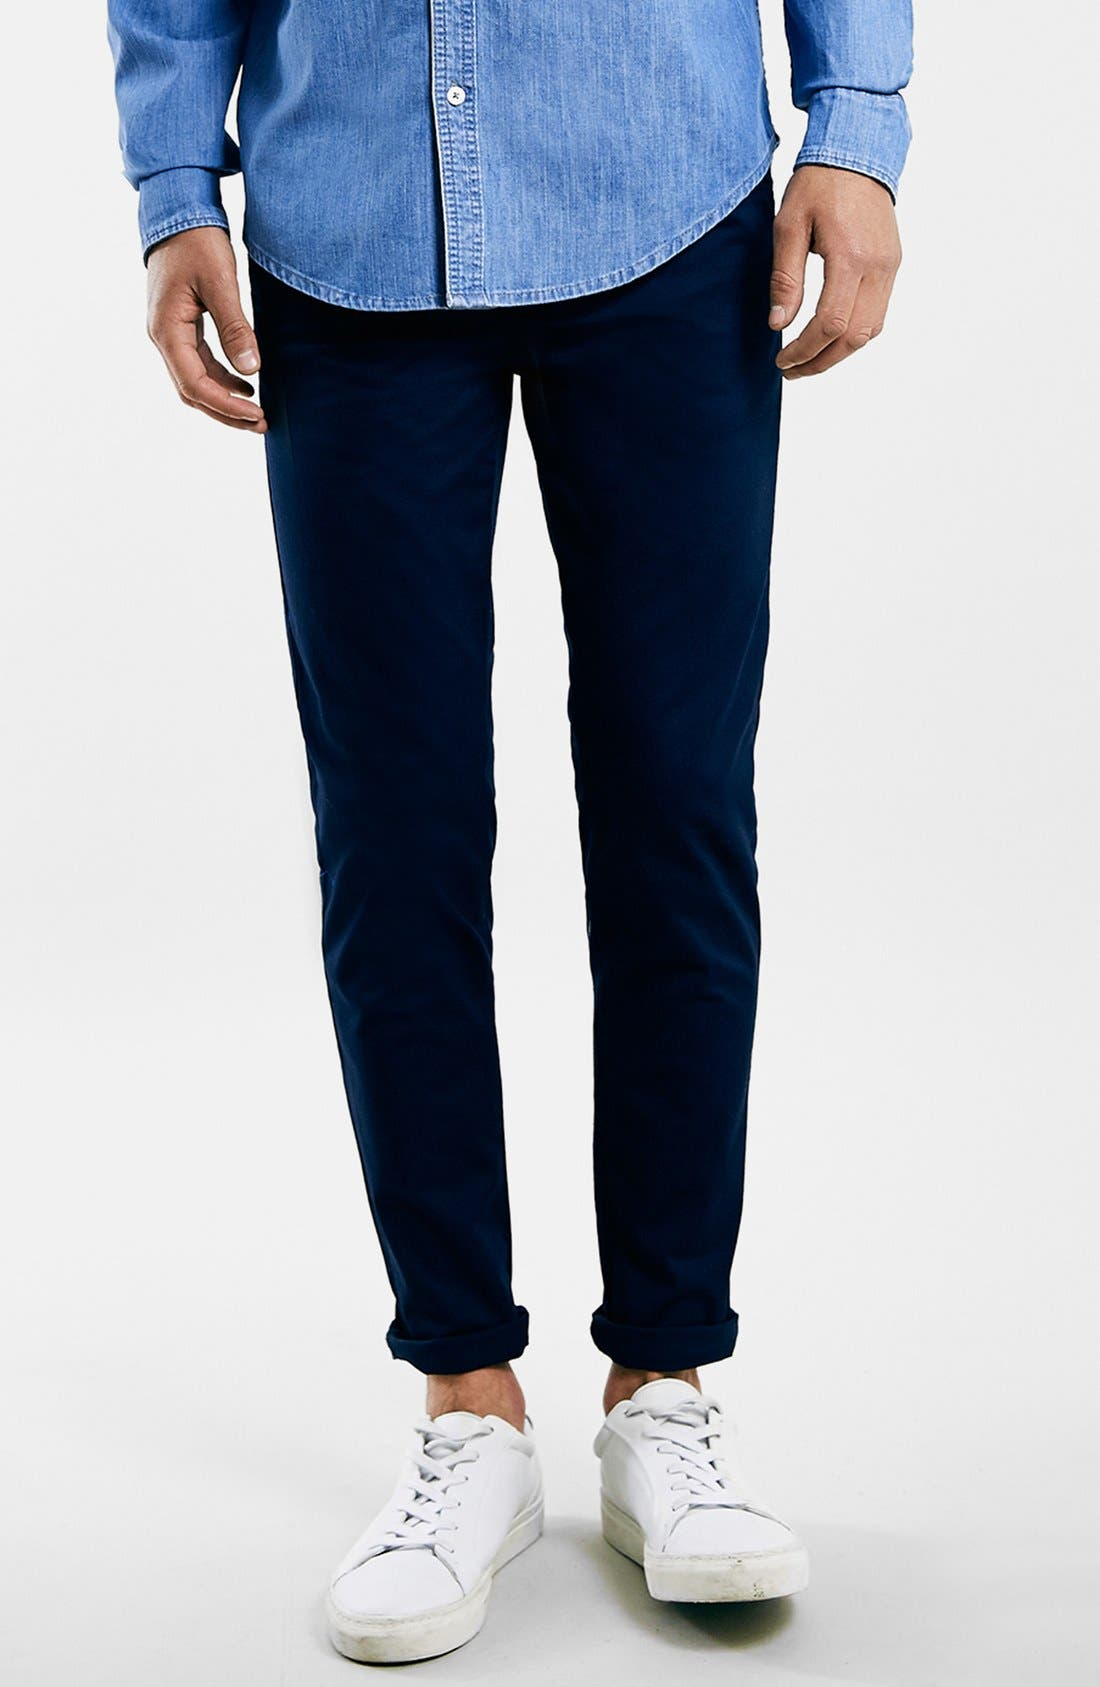 Stretch Skinny Fit Chinos,                             Main thumbnail 1, color,                             DARK BLUE